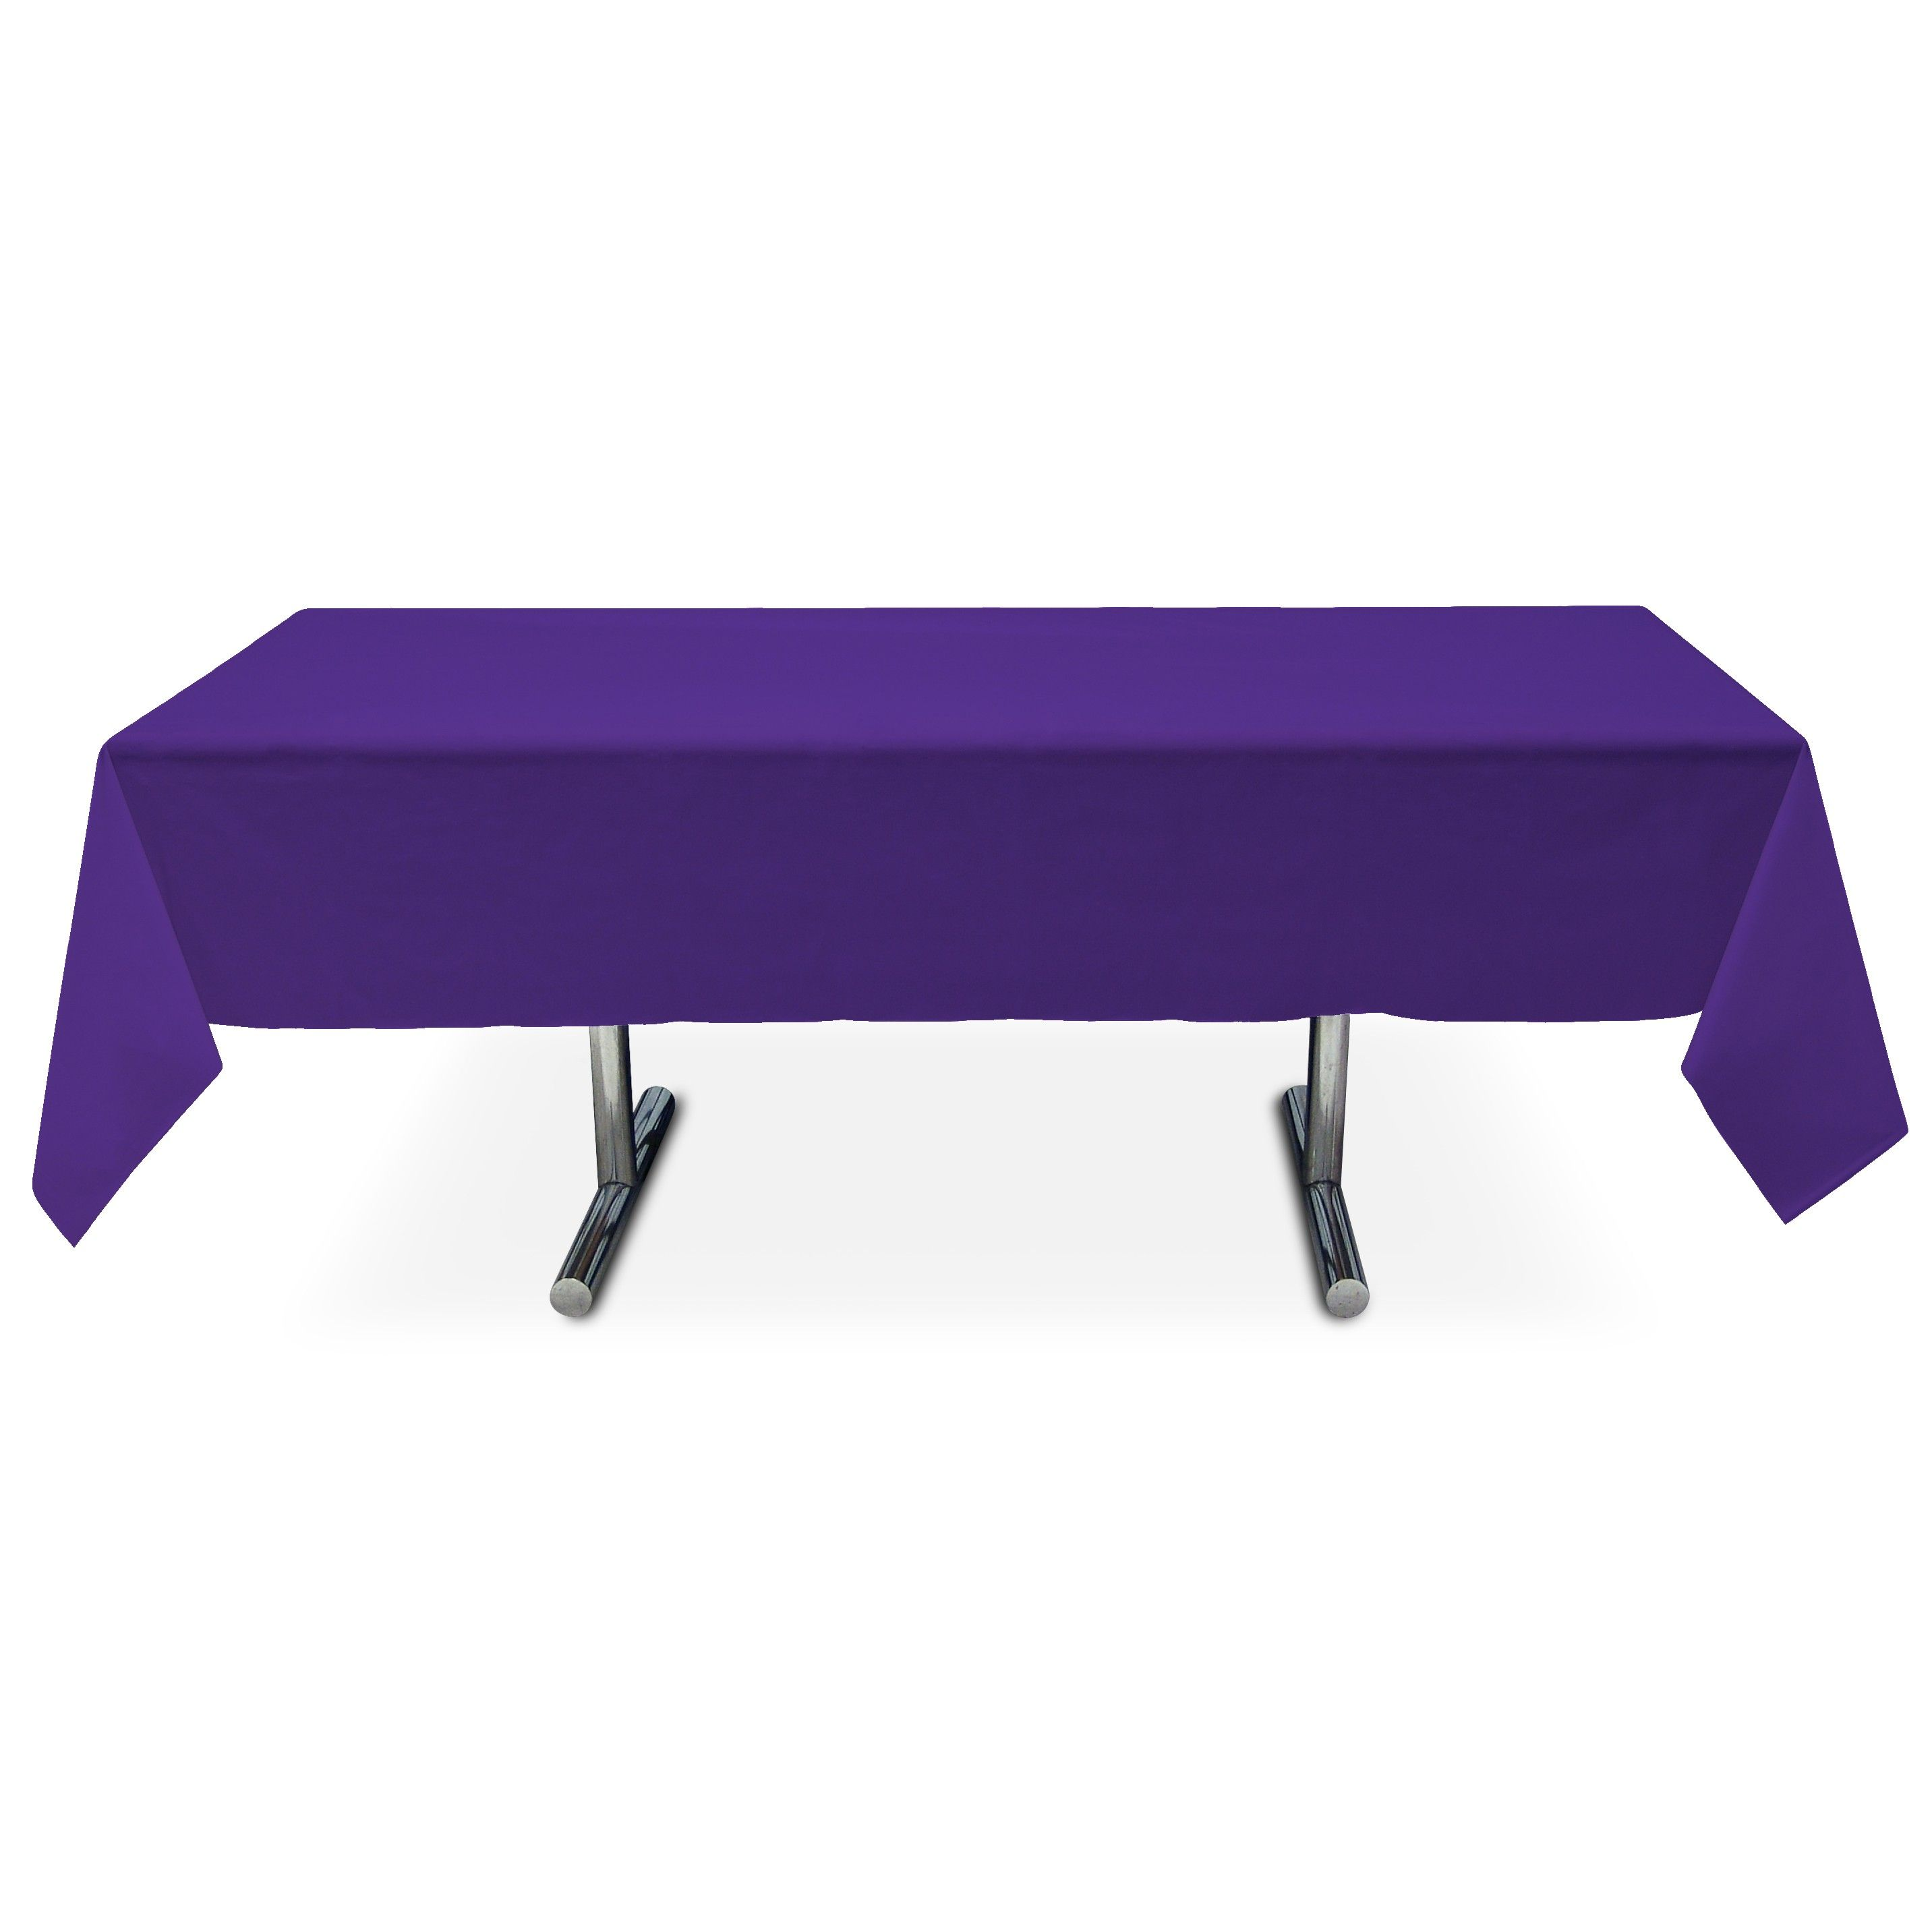 Super Plastic Table Cover Rectangle Purple Add The Groom Alphanode Cool Chair Designs And Ideas Alphanodeonline